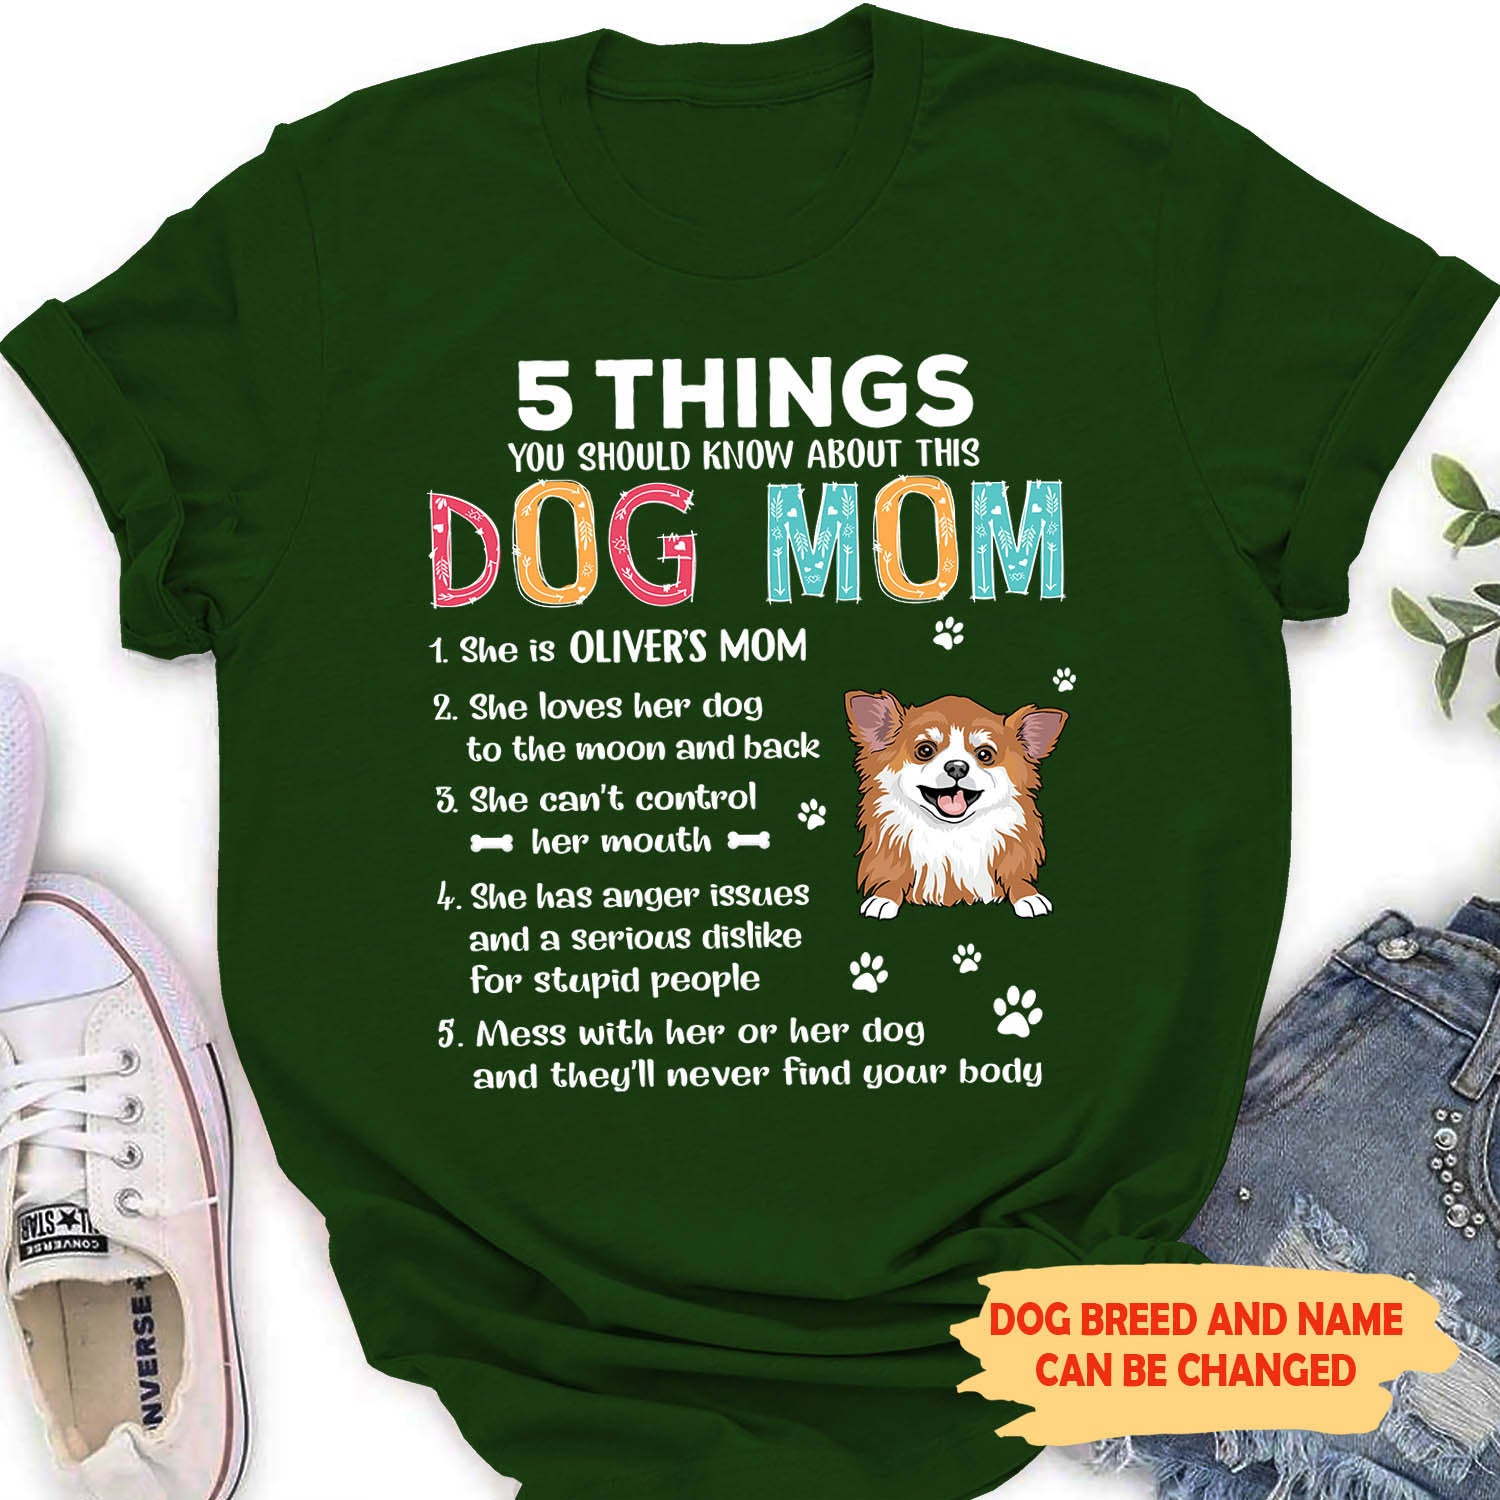 5 Things About Dog Mom - Personalized Custom Women's T-shirt